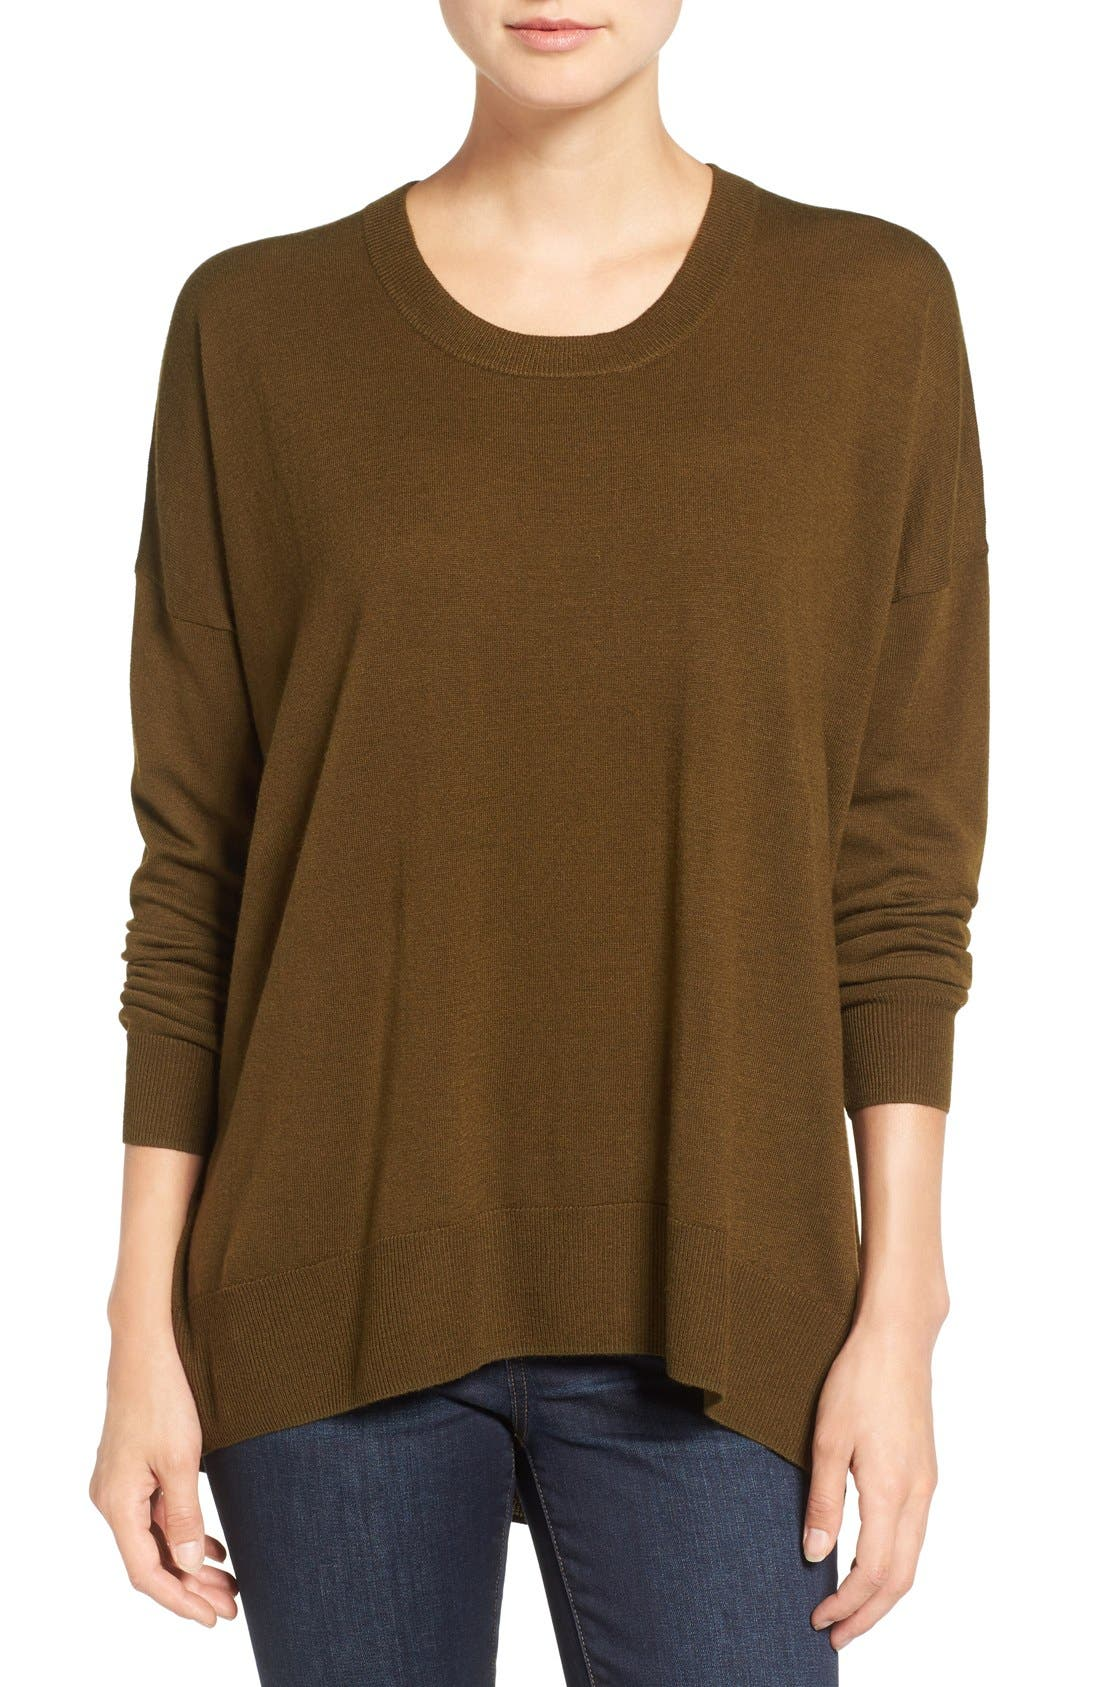 Alternate Image 1 Selected - Madewell Excursion Pullover Sweater